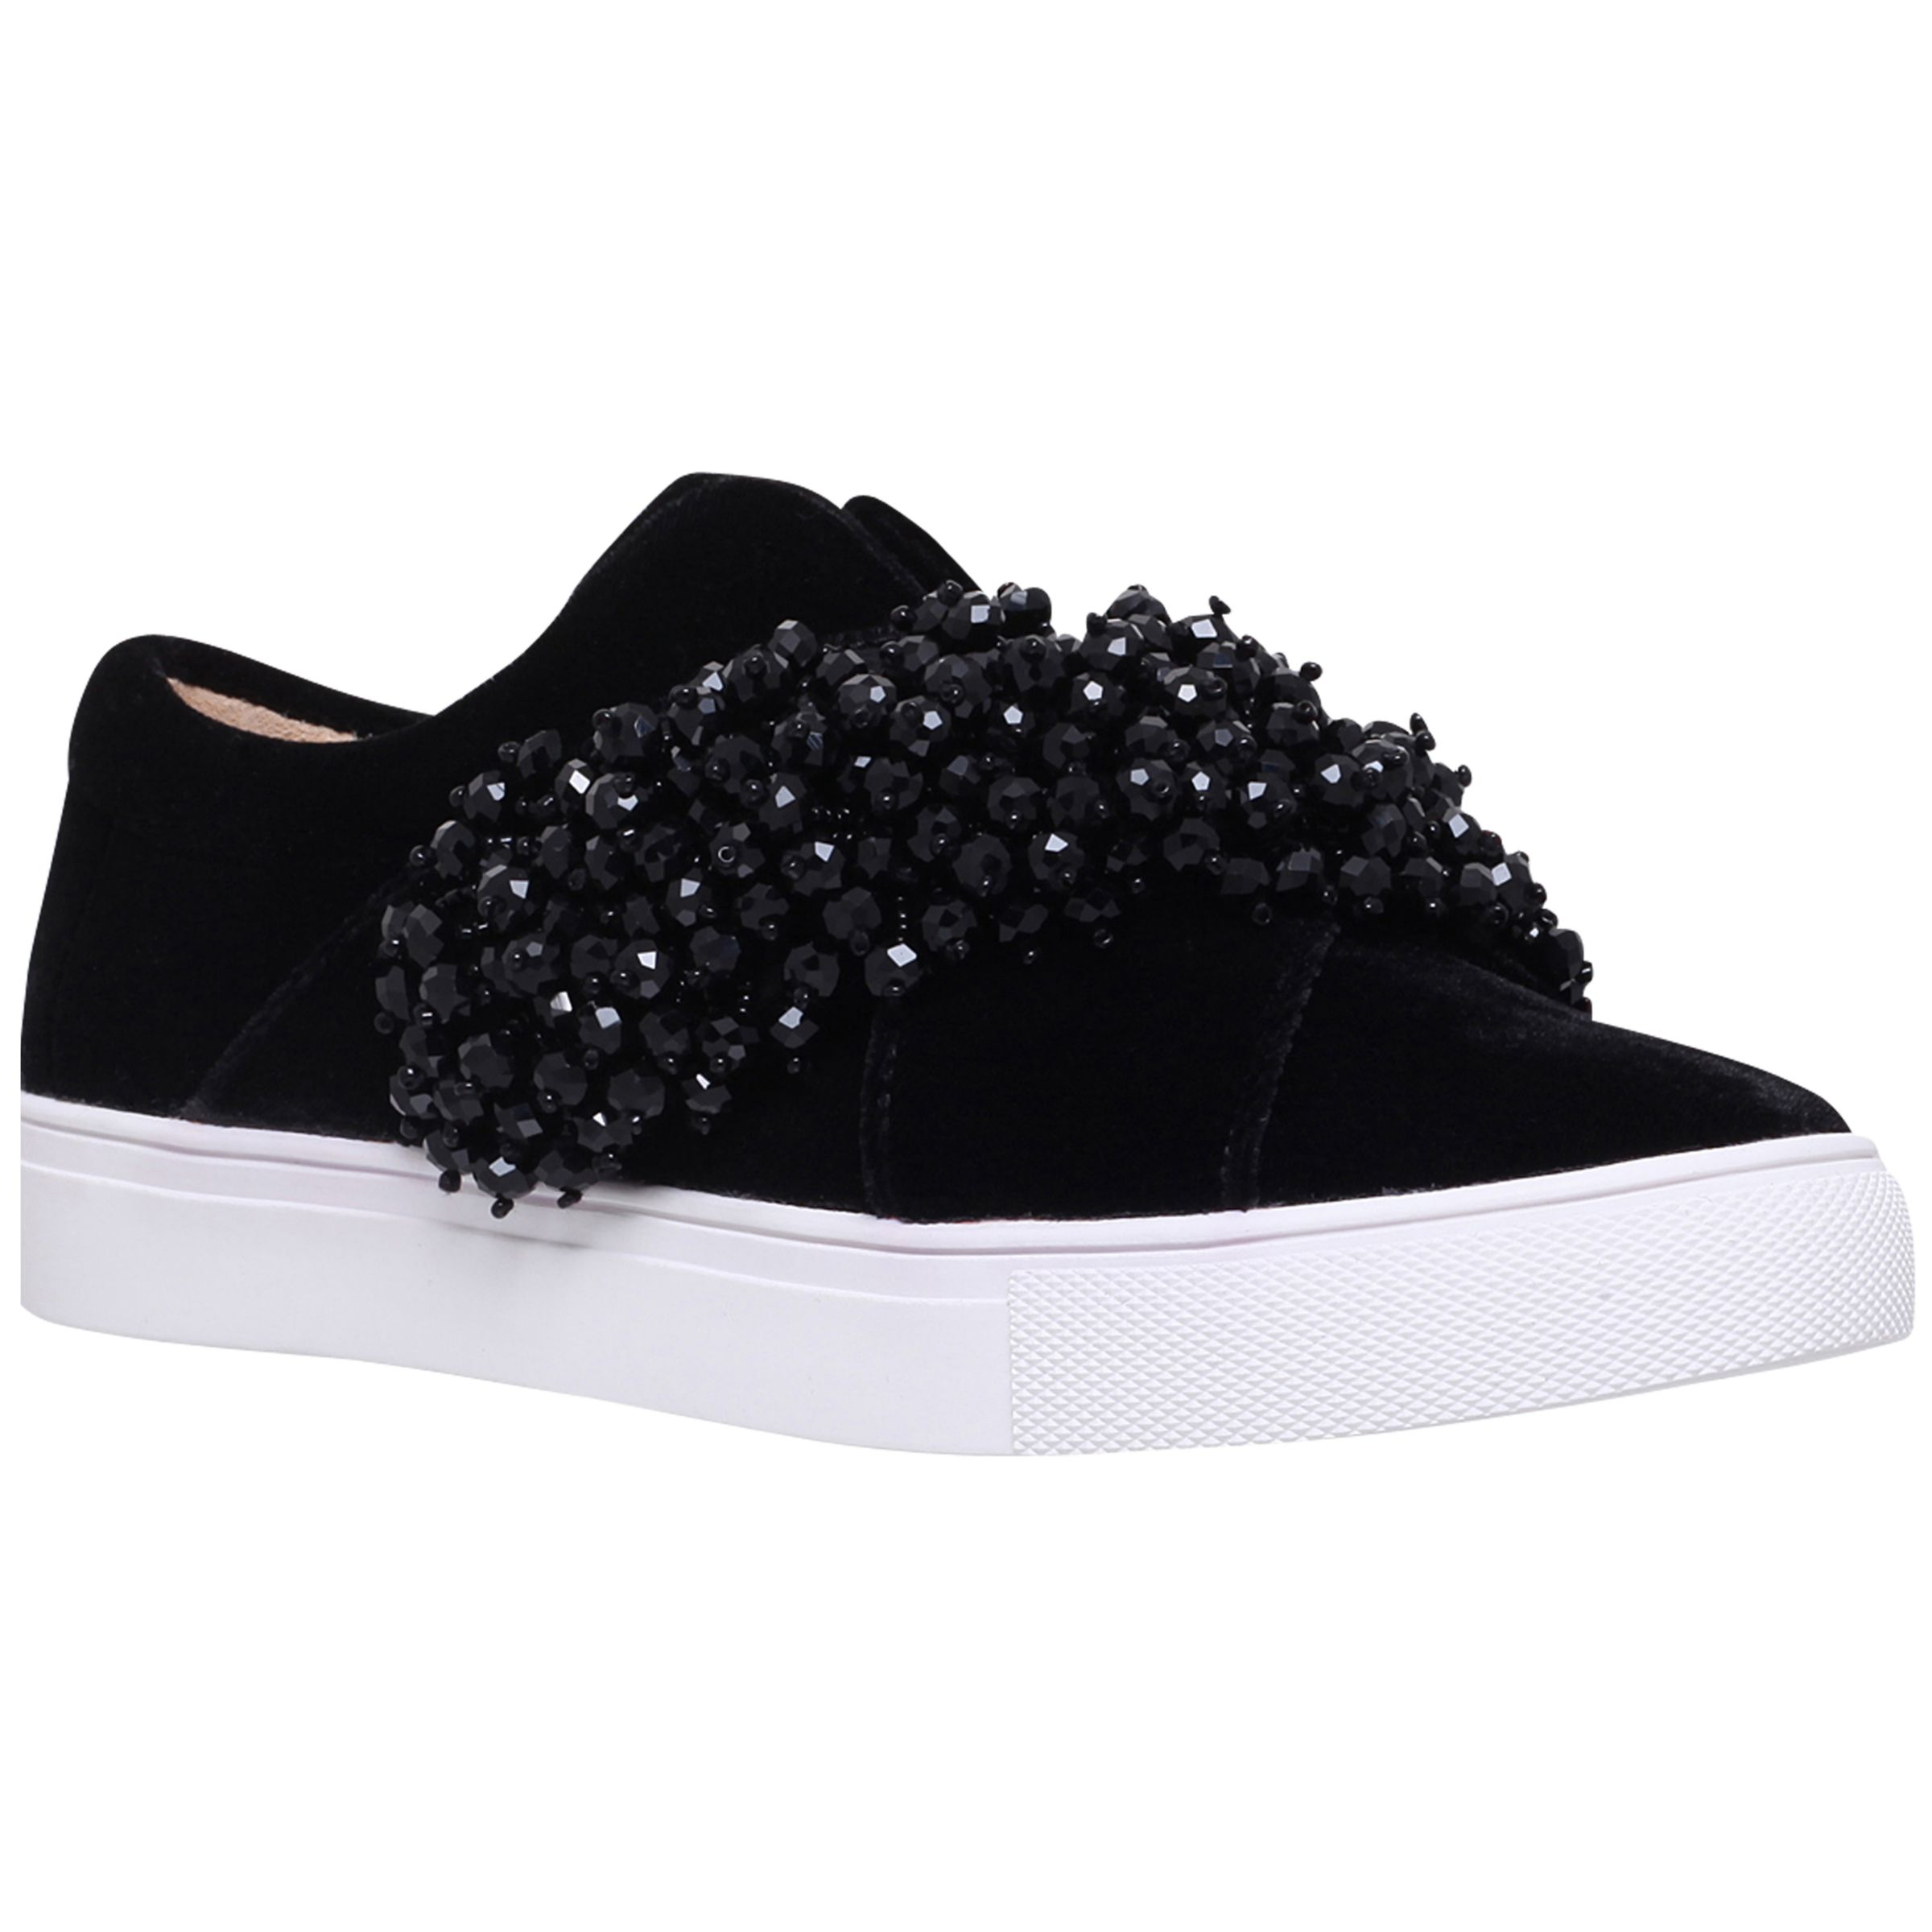 KG by Kurt Geiger KG by Kurt Geiger Ocean Embellished Trainers, Black